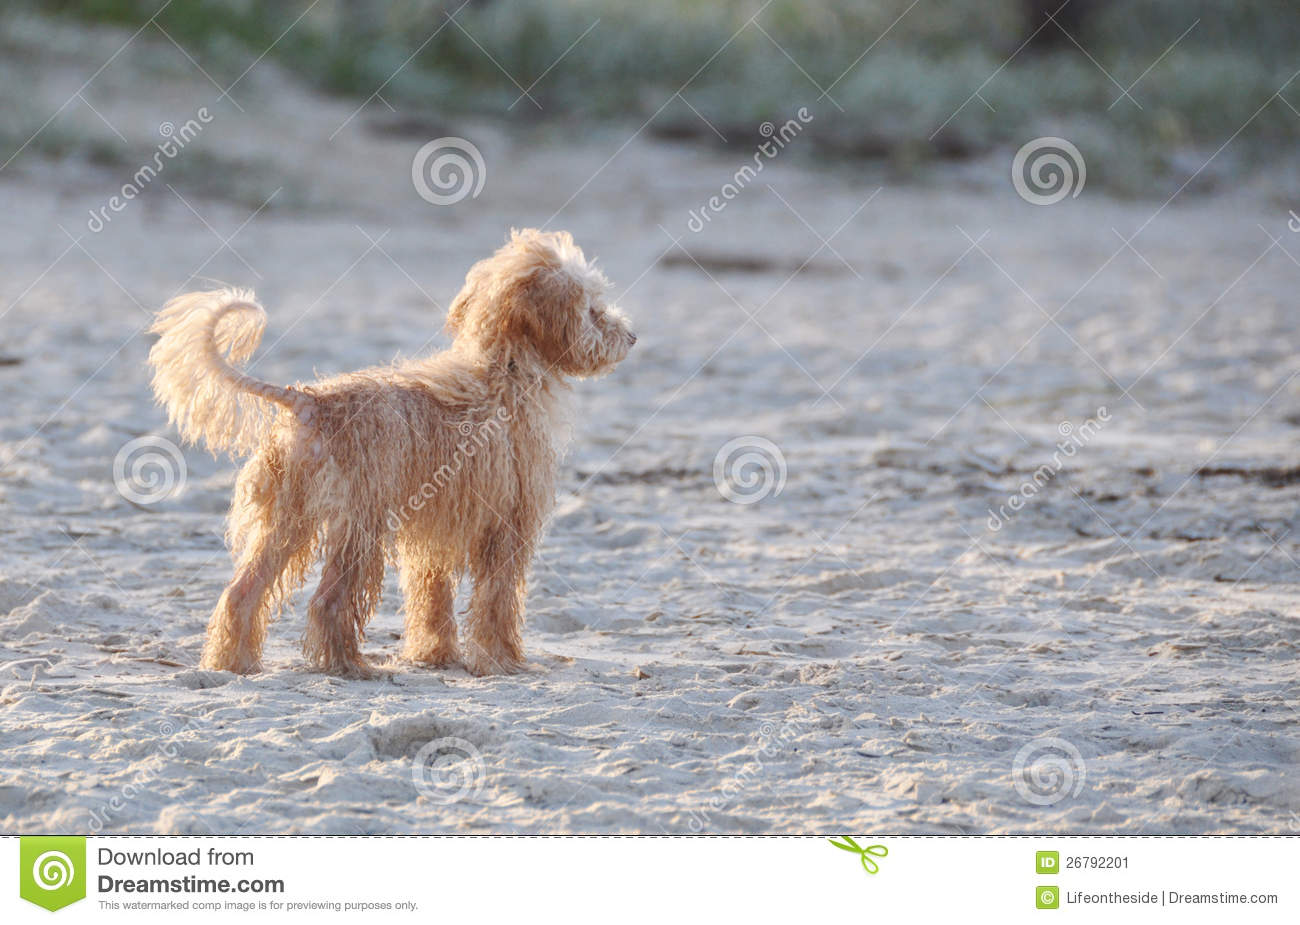 cute-adorable-little-scruffy-dog-alone-beach-26792201 Map Animation on make a animated map, treasure map, geomatics engineering, trap street, interactive map, map projection, research map, animated population growth map, sci-fi map, media map, animated world map, world culture map, literature map, data visualization map, adventure map, website content map, early world maps, tv map, cartographic generalization, illustrator map, cartographic relief depiction, creative process map, fiction map, disney's map, virtual map, here be dragons,